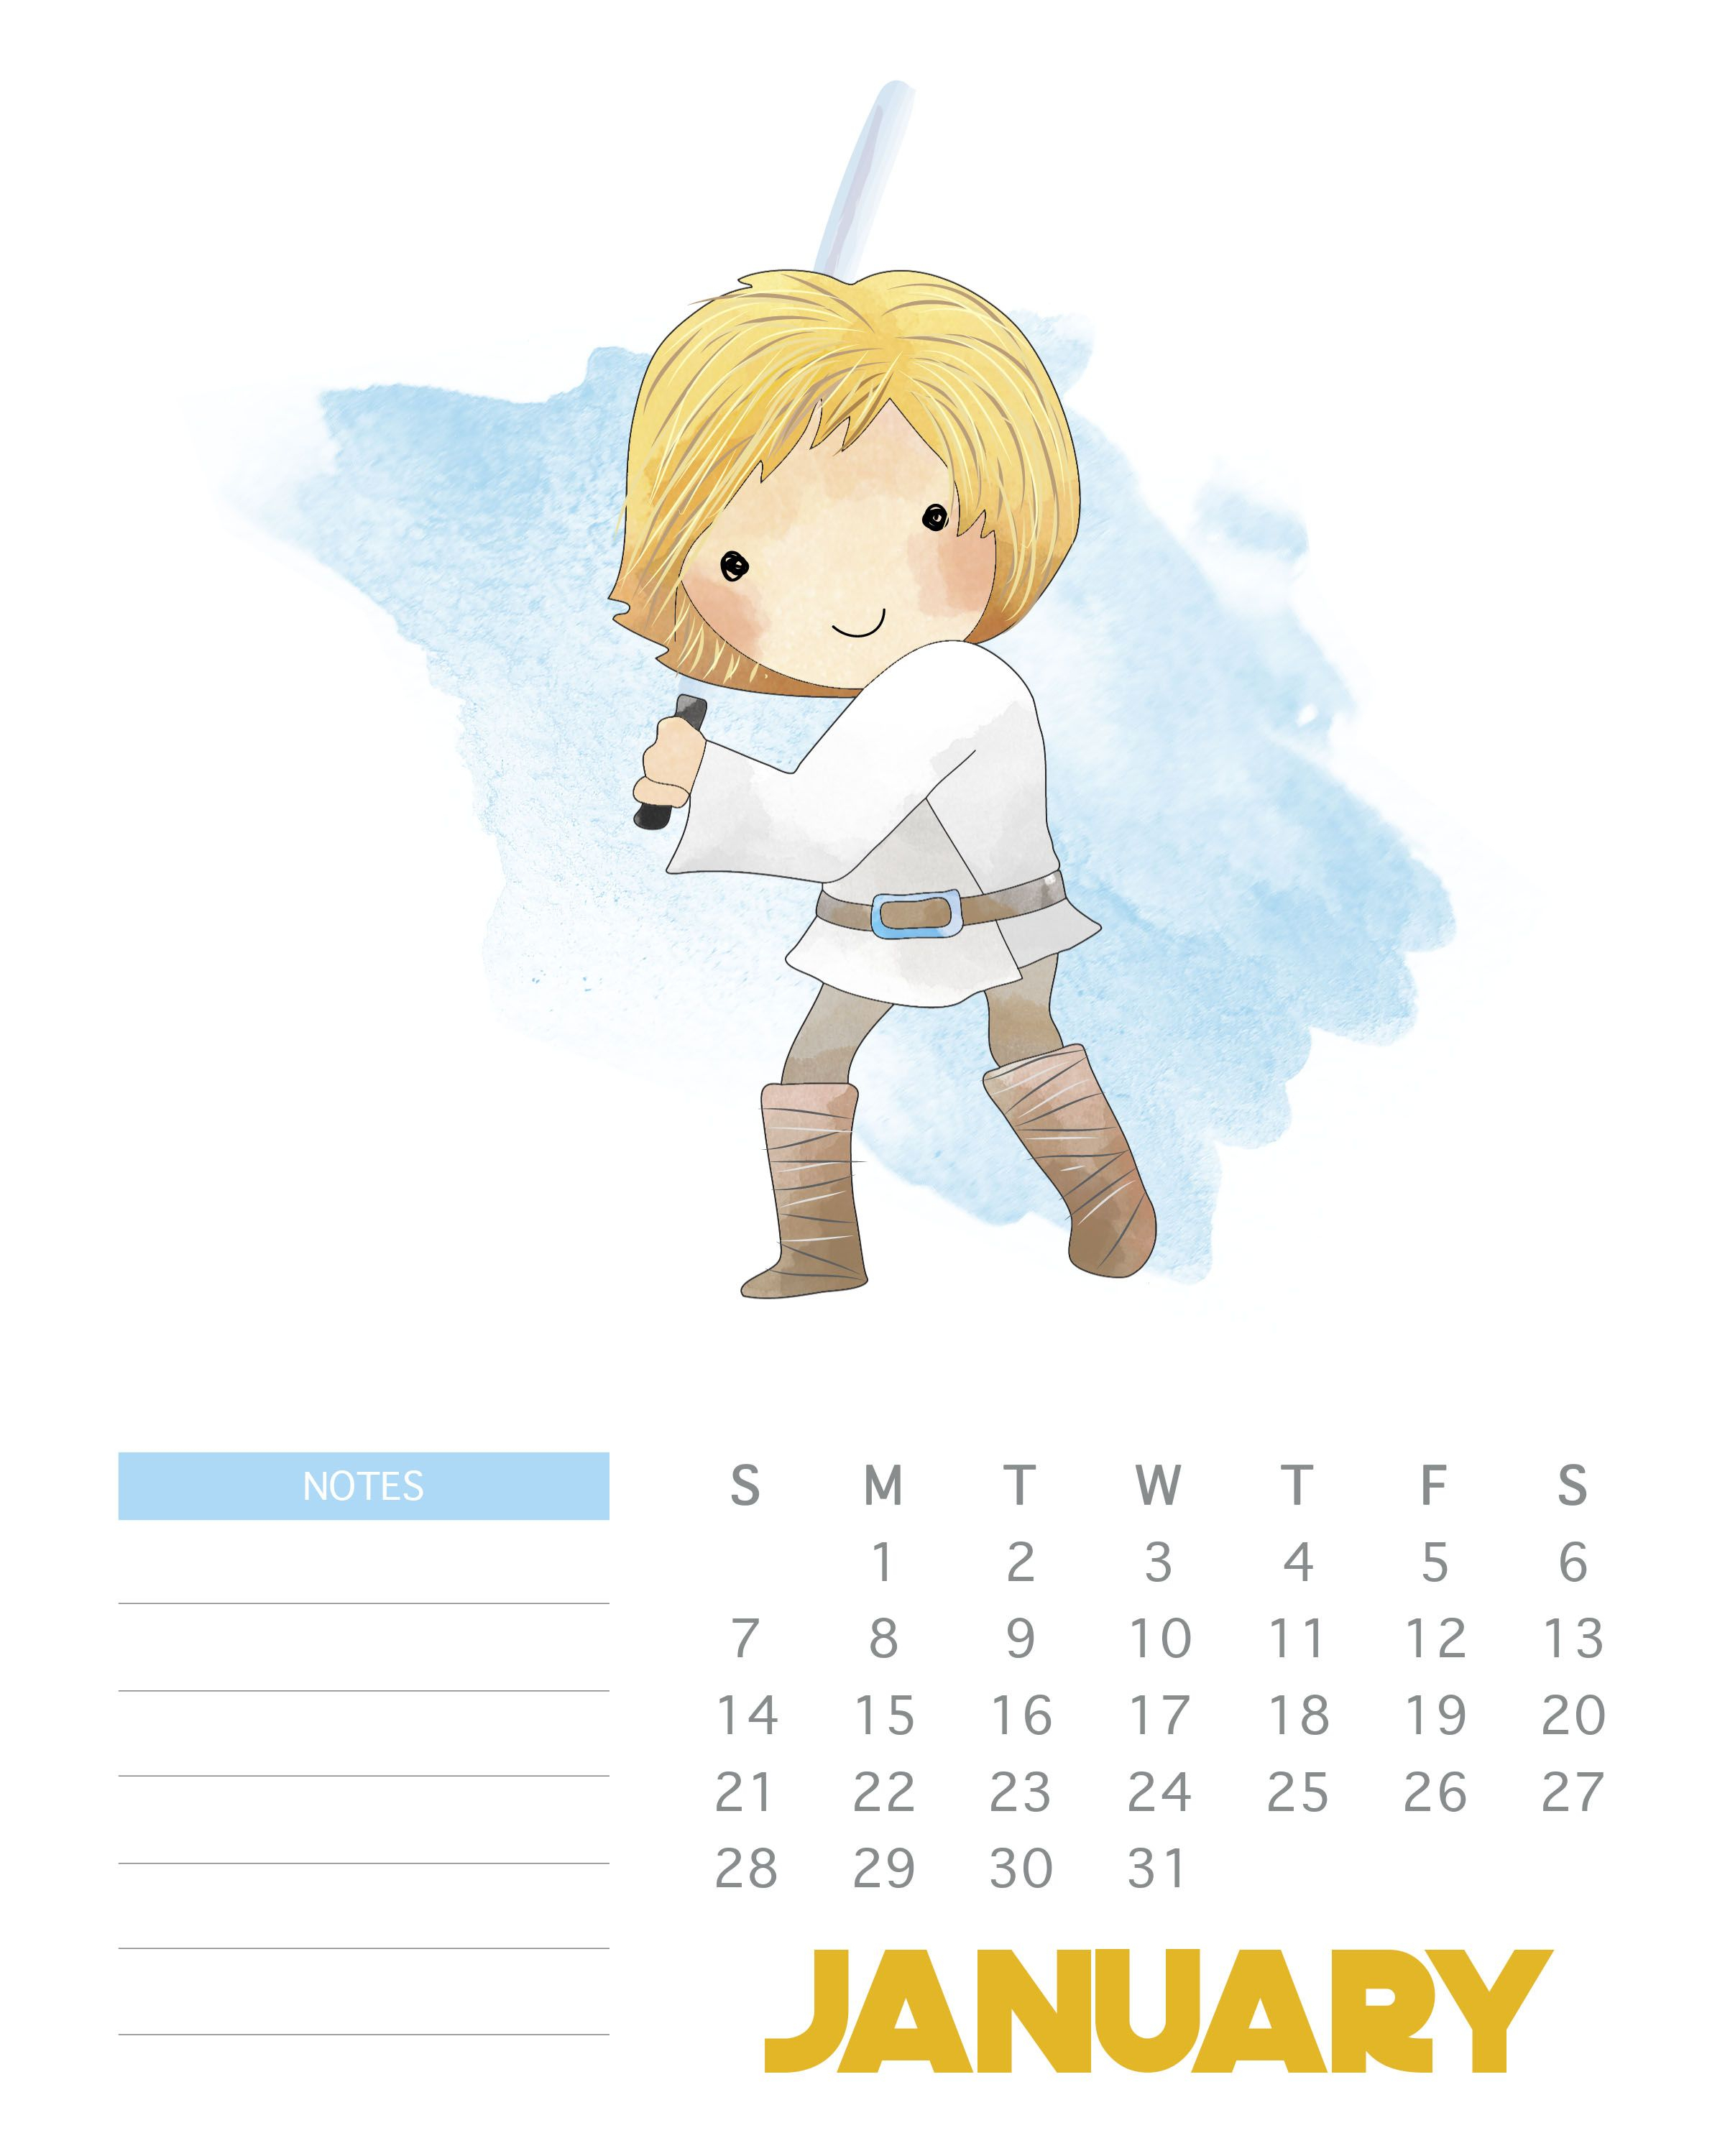 January 2018 Star Wars Calendar Template | Monthly Wallpaper with Star Wars Calendar Printable